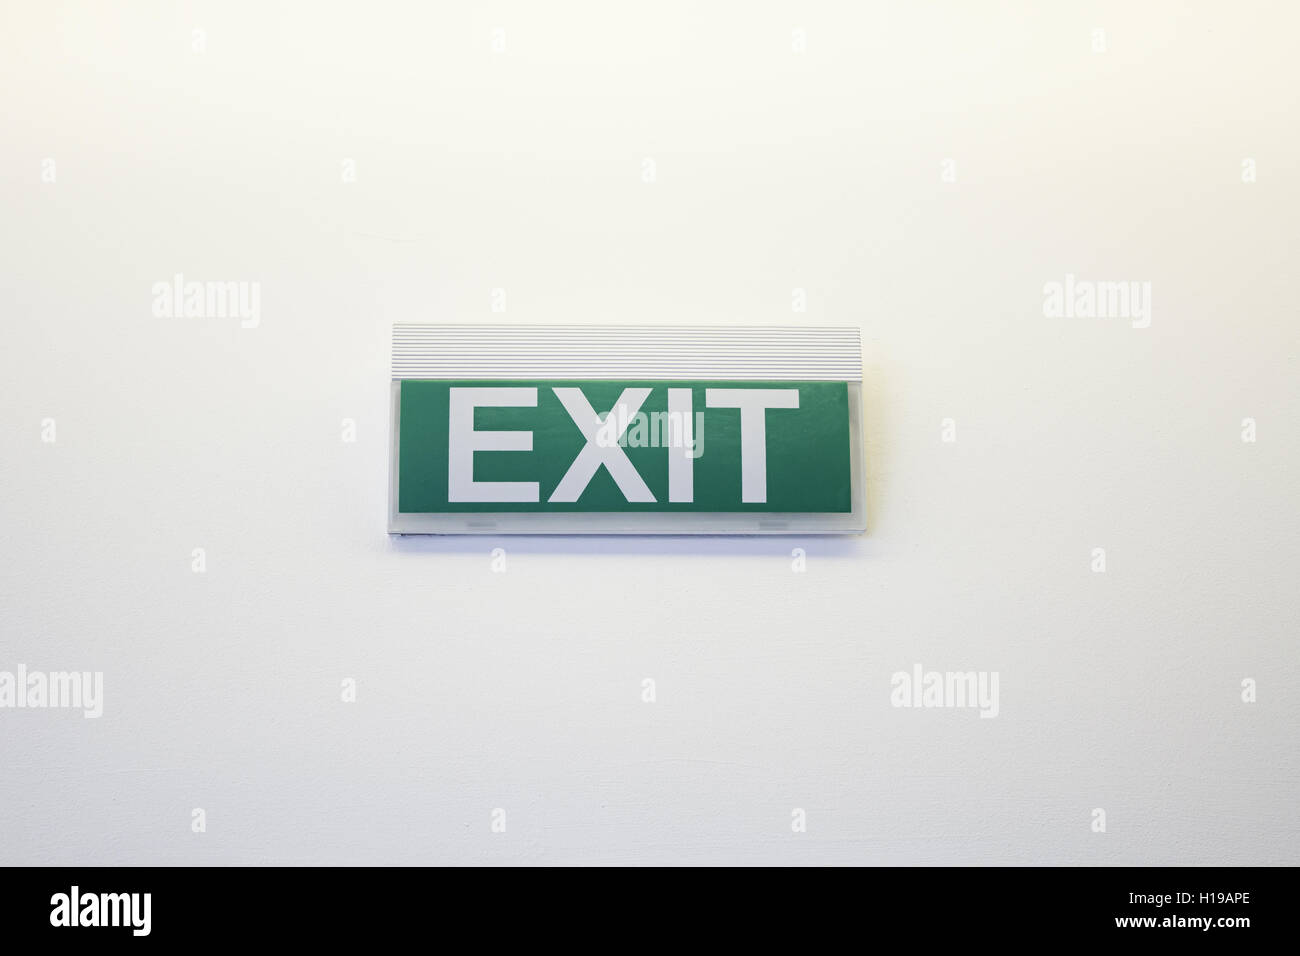 Exit sign on white wall symbol stock photo royalty free image exit sign on white wall symbol buycottarizona Images